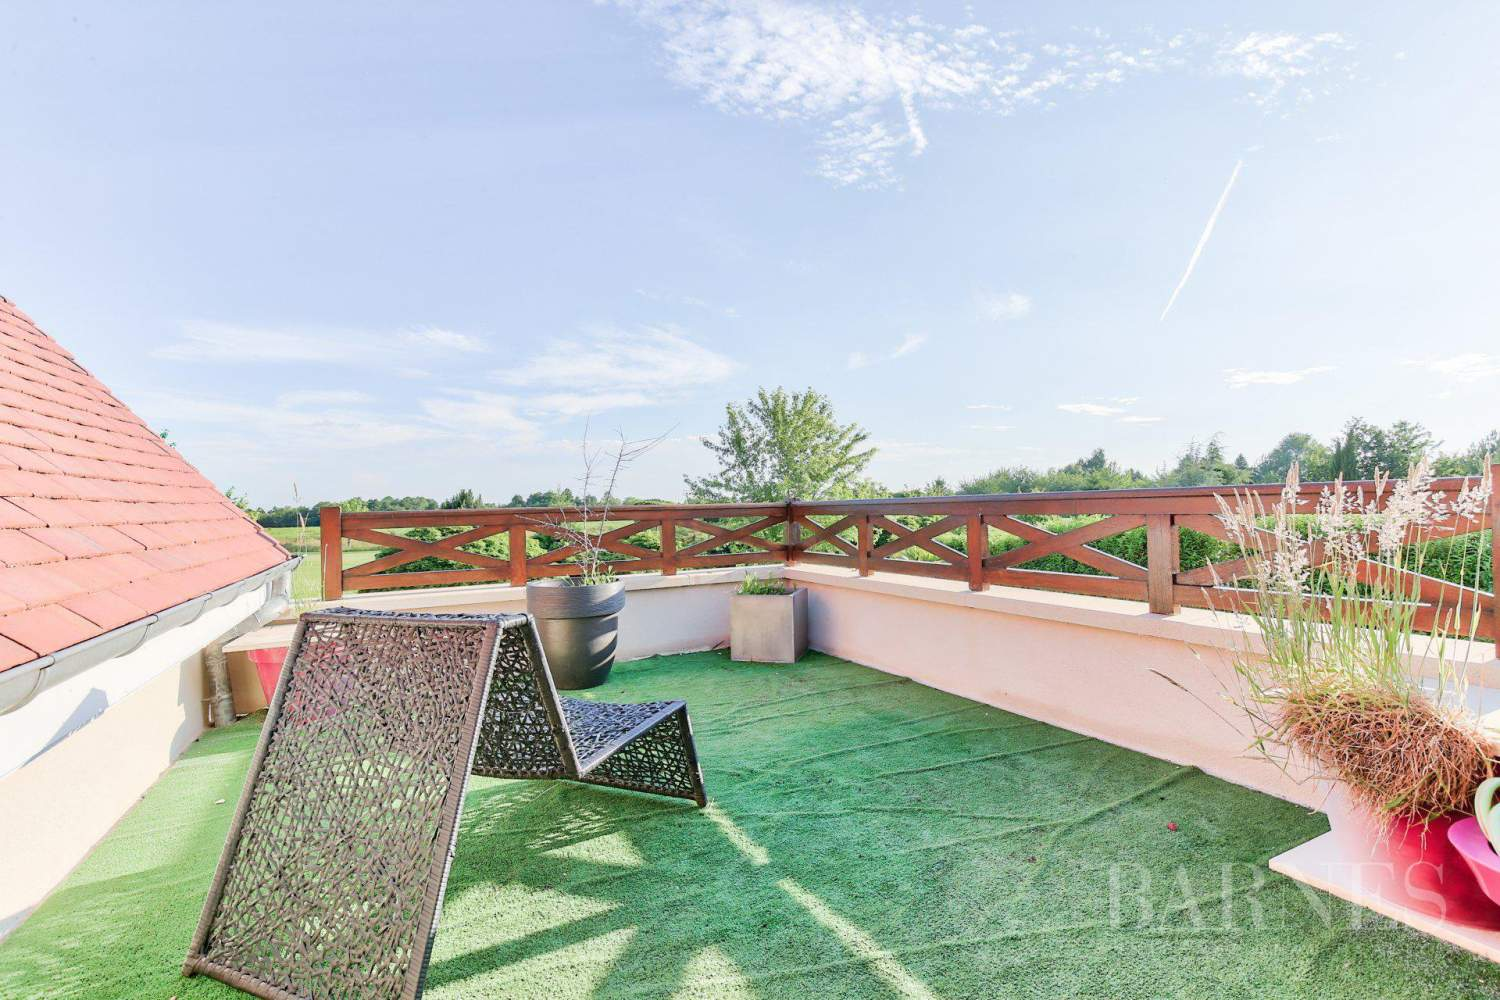 MAGNY-LE-HONGRE - PROPERTY WITH A VIEW OF A GOLF COURSE - 5 BEDROOMS - 1,000m² (10,764 sq ft) of land. picture 6